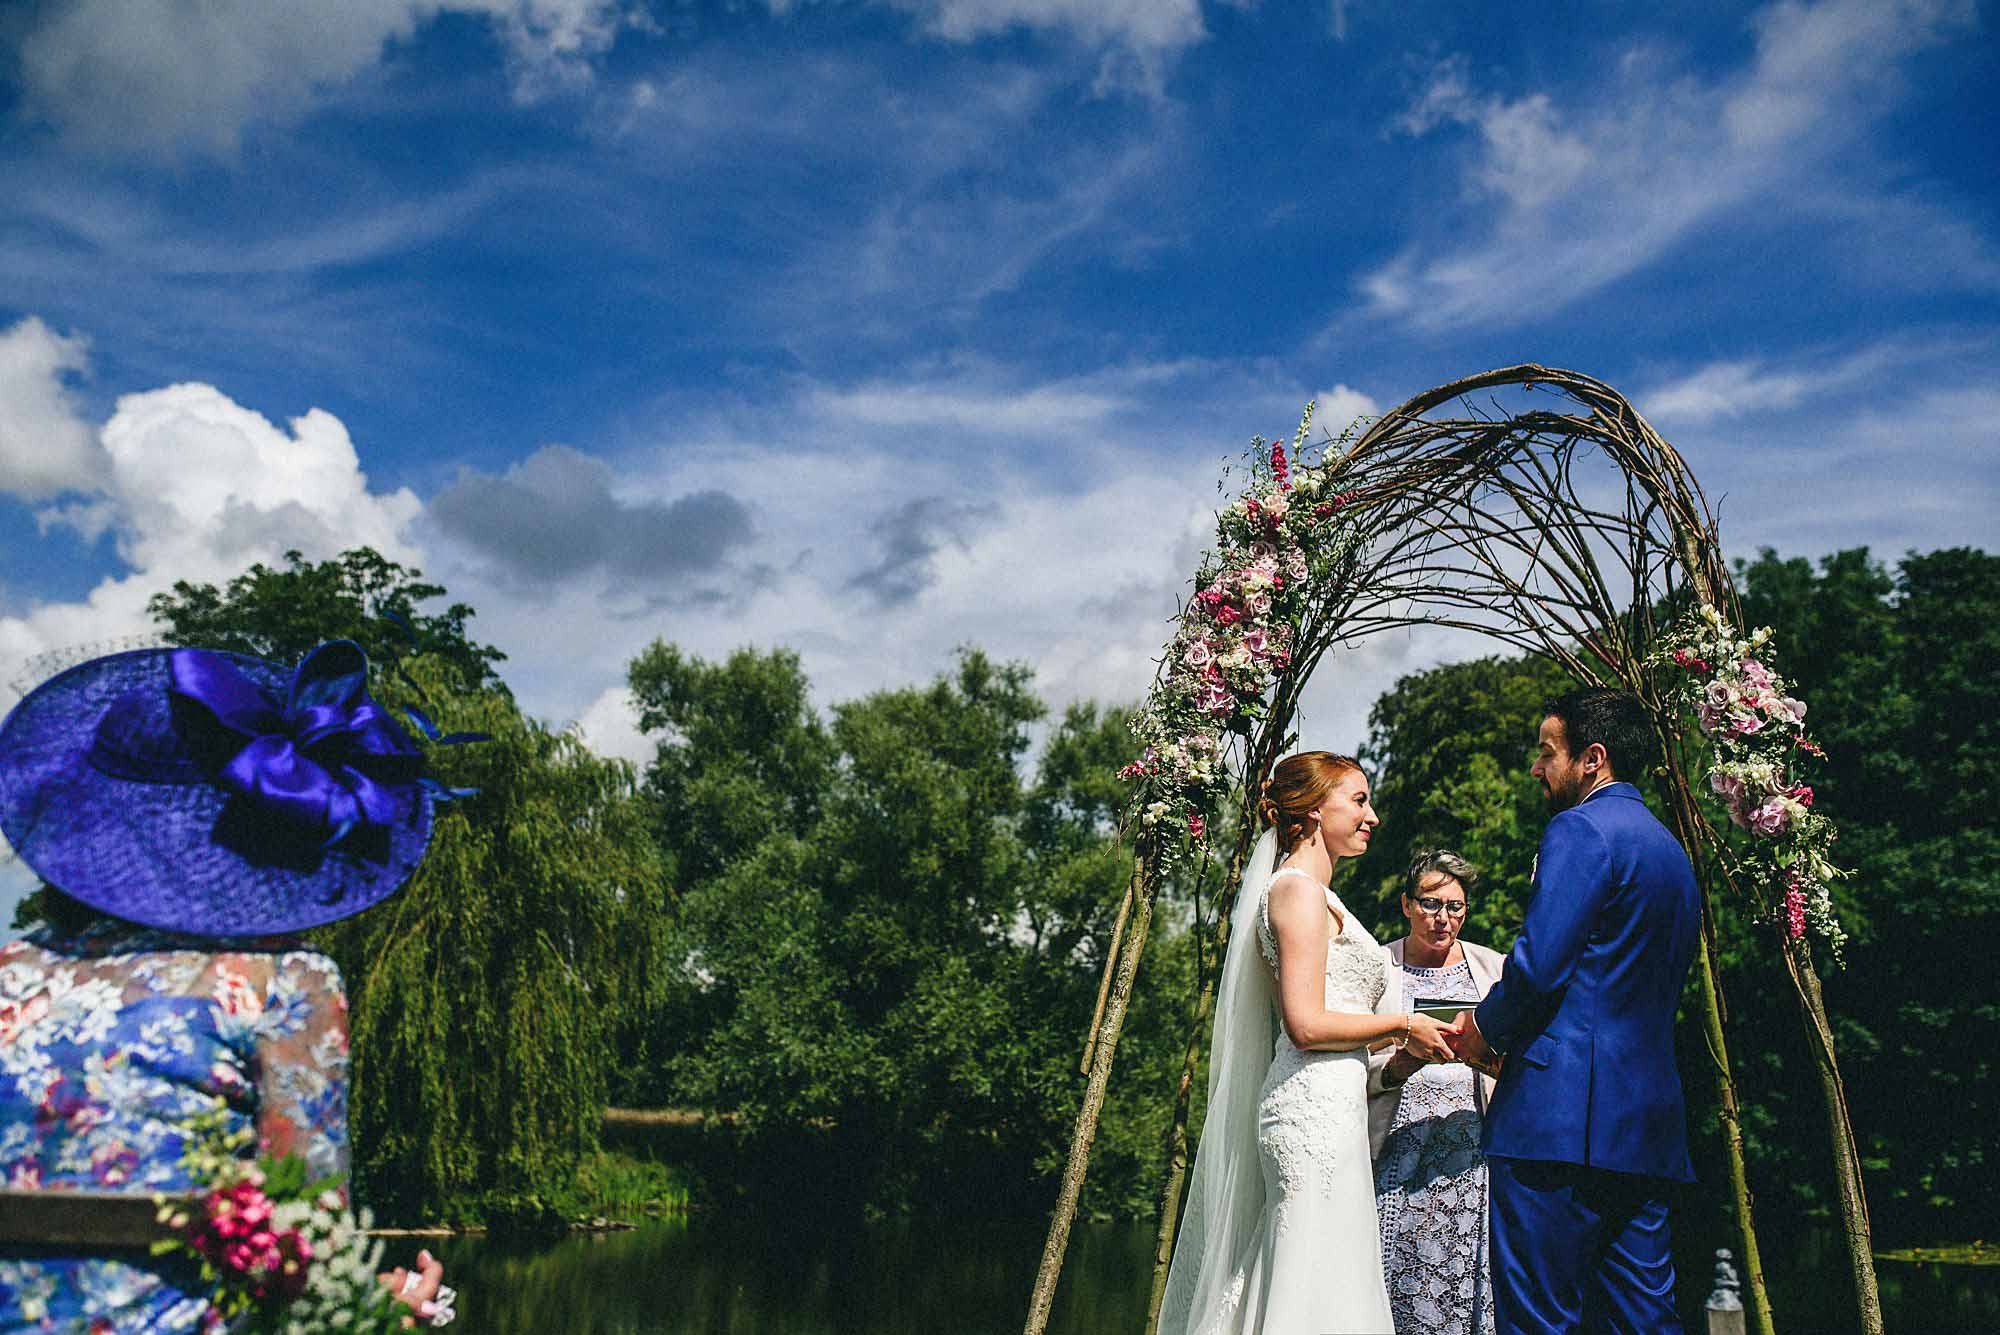 Narborough Hall Gardens wedding photography 26 Completed